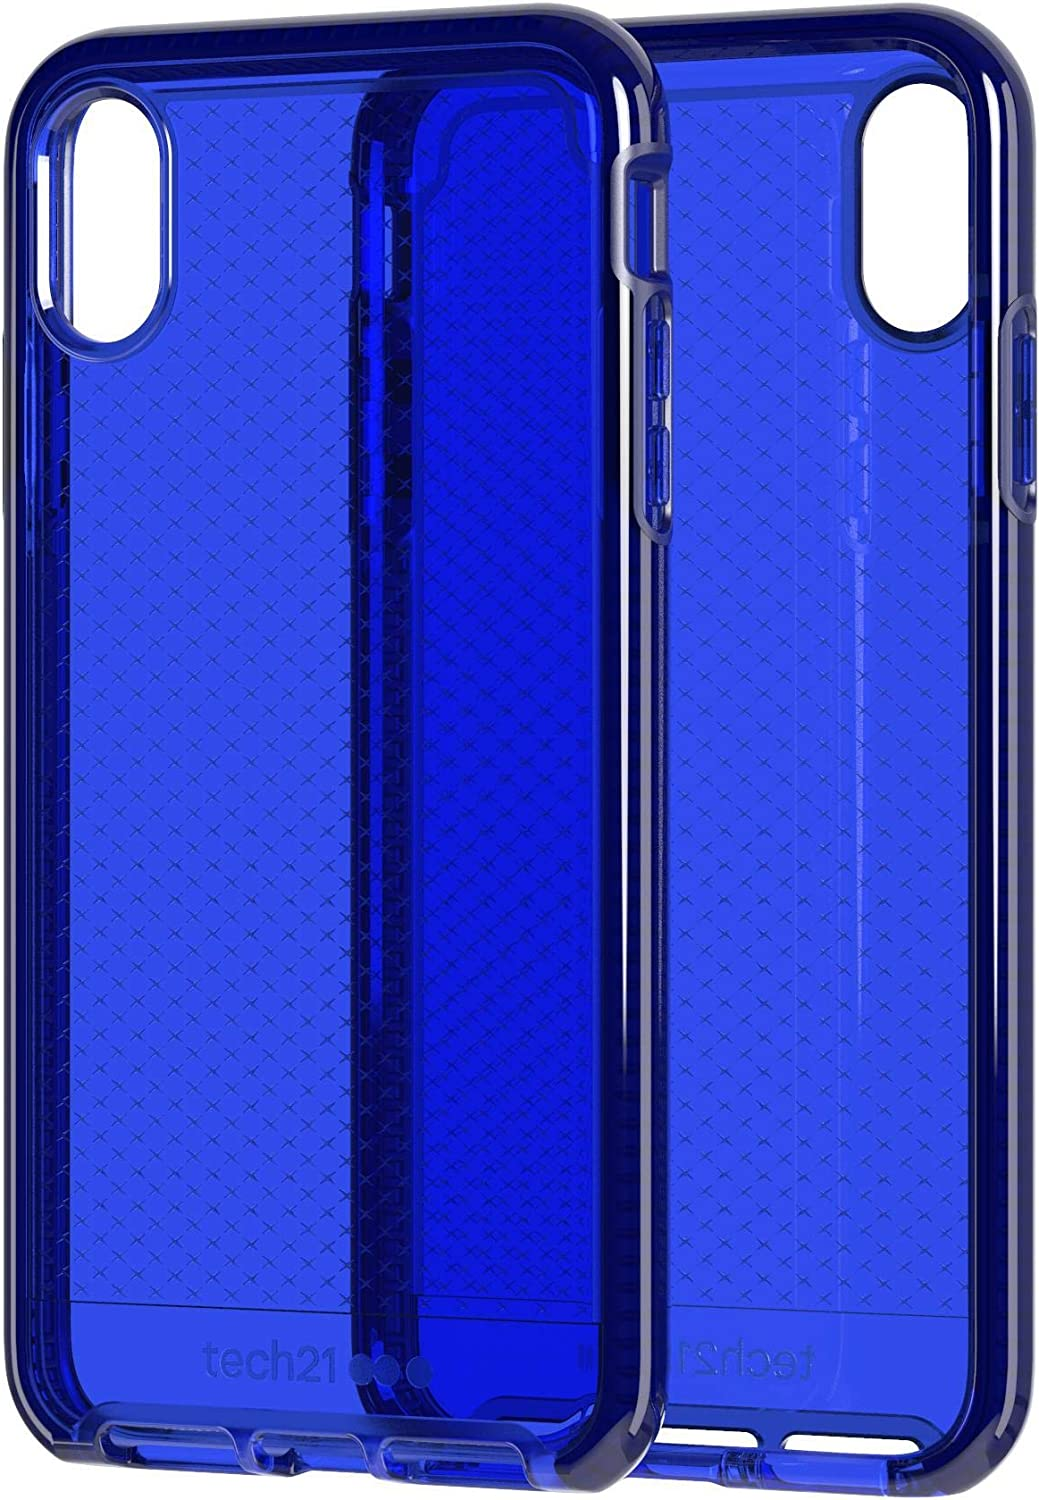 tech21 Evo Check Phone Case Cover for Apple iPhone Xs Max - Midnight Blue